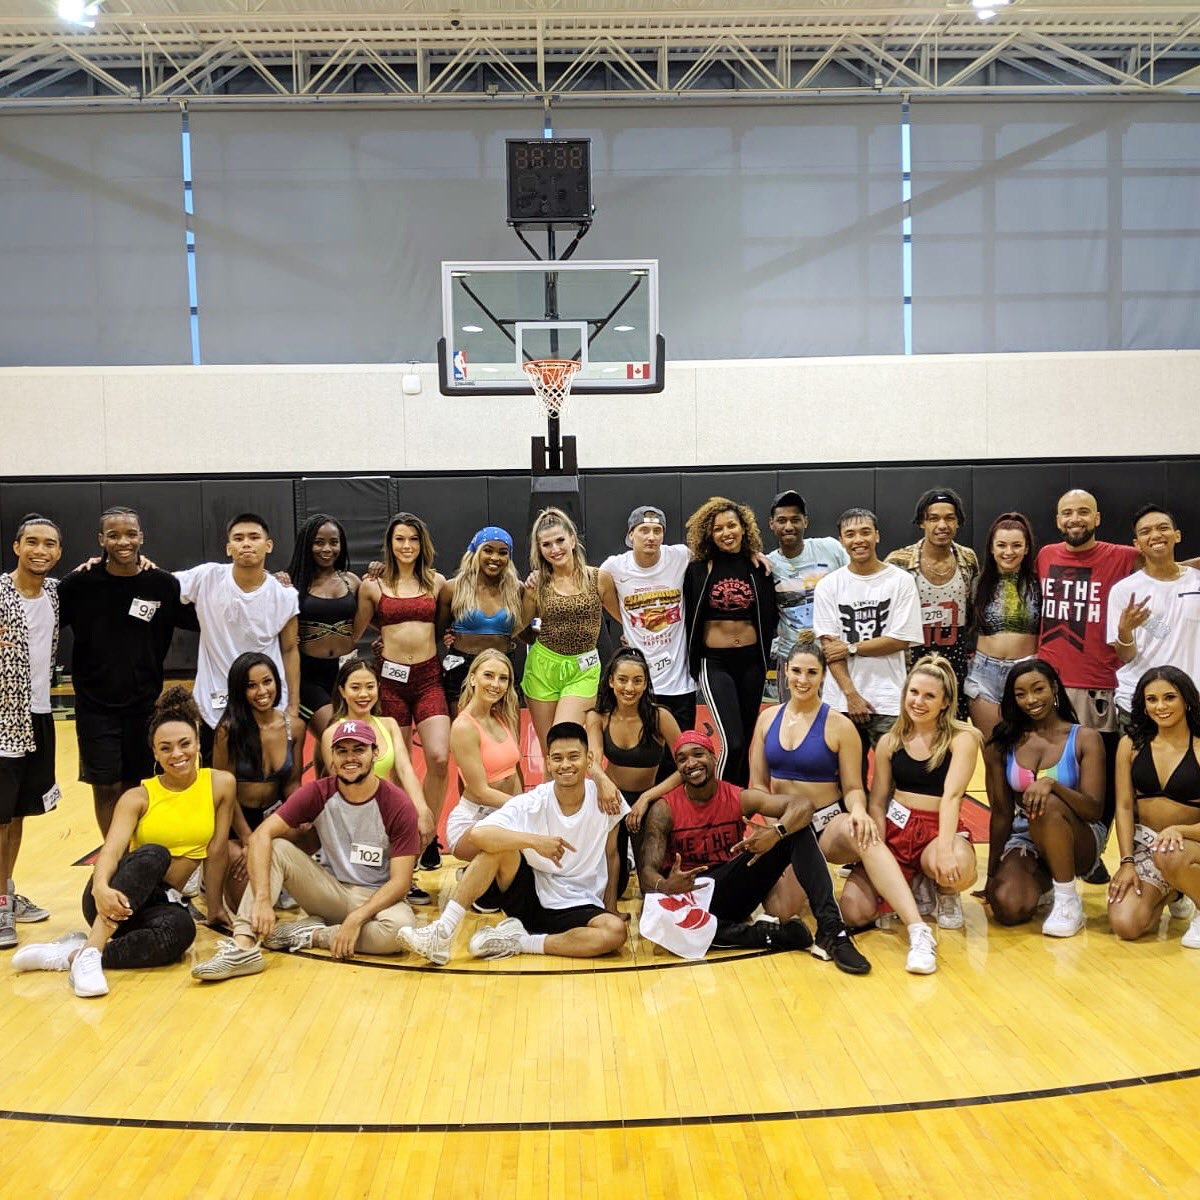 After a 9 hour audition and individual interviews, our 2019/2020 Northside Crew has been selected. Here is your official NBA dance team for the defending 2019 NBA Champions! 🏀🏆 #wethechamps #northsidecrew #nbadancers